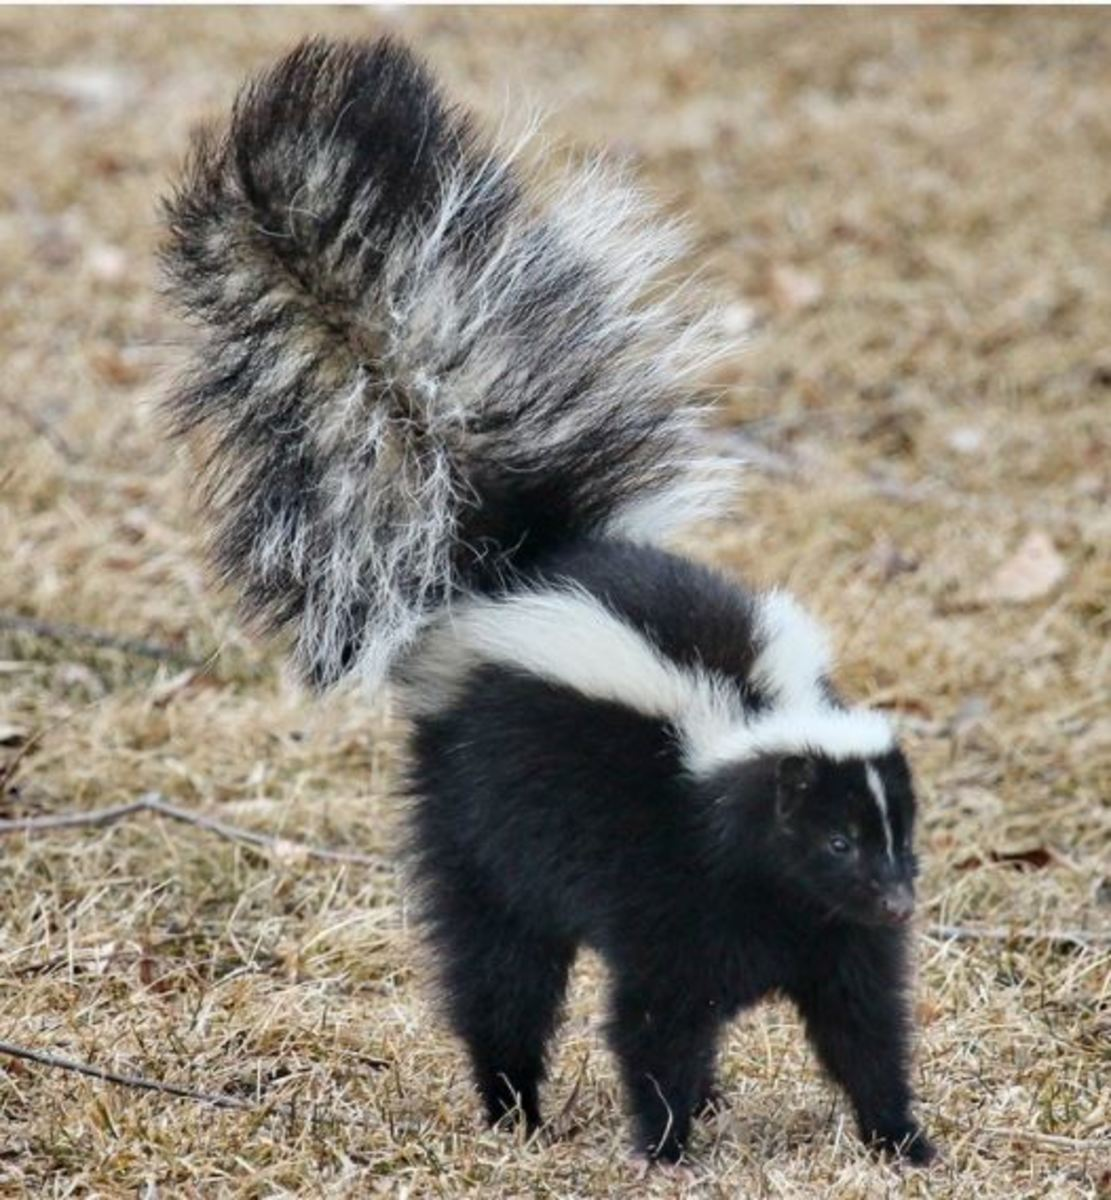 Skunks are known to carry and transmit rabies within the United States.